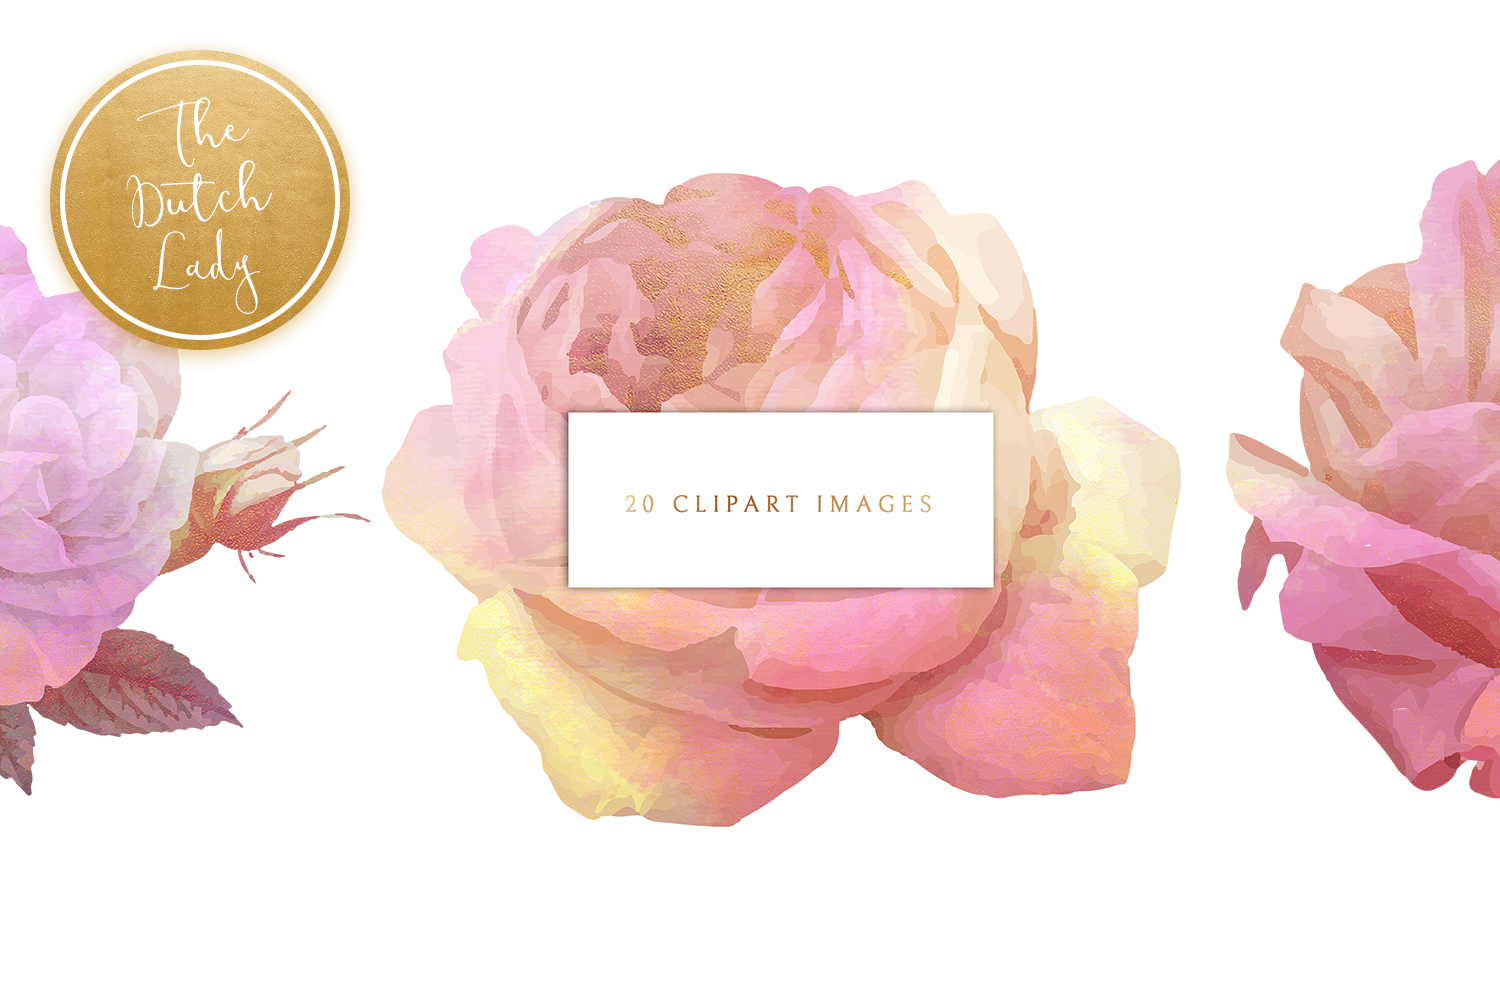 Olivia clipart graphic royalty free download Vintage Floral & Botanical Clipart - Olivia - Vsual graphic royalty free download